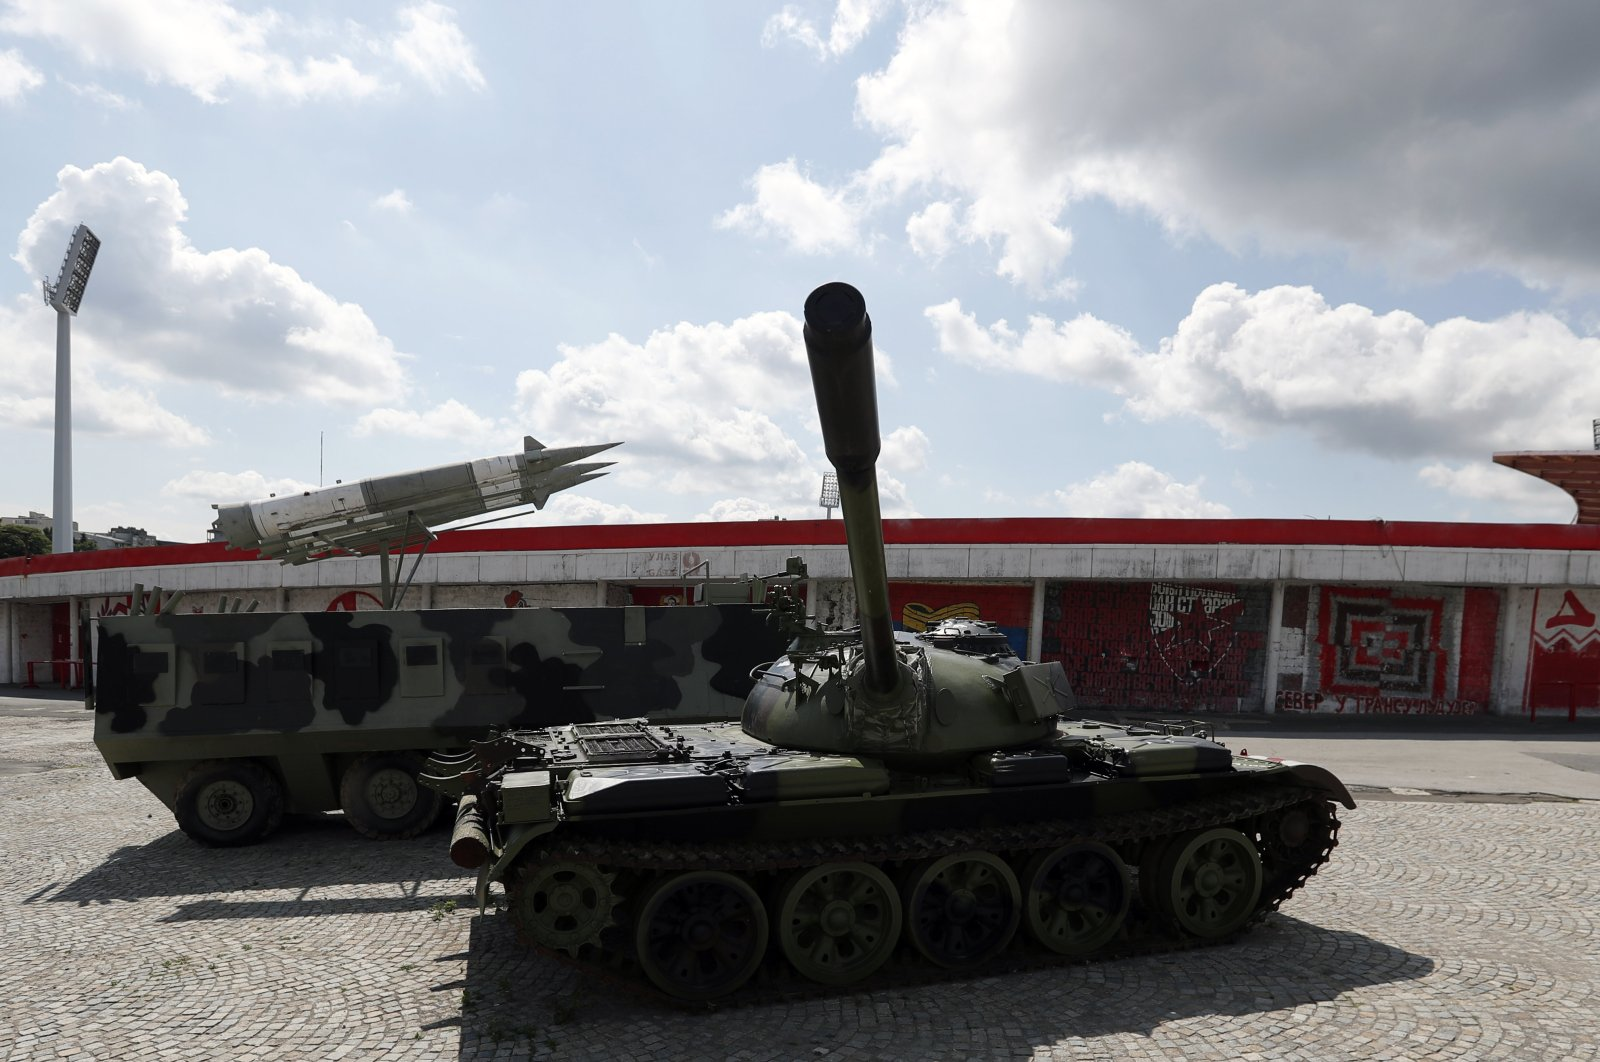 A former Yugoslav army T-55 battle tank adorned with the club's trademark red and white emblem and a model of an anti-aircraft rocket system parked in front of northern grandstand of Rajko Mitic stadium in Belgrade, Serbia, June 20, 2020. (AP Photo)